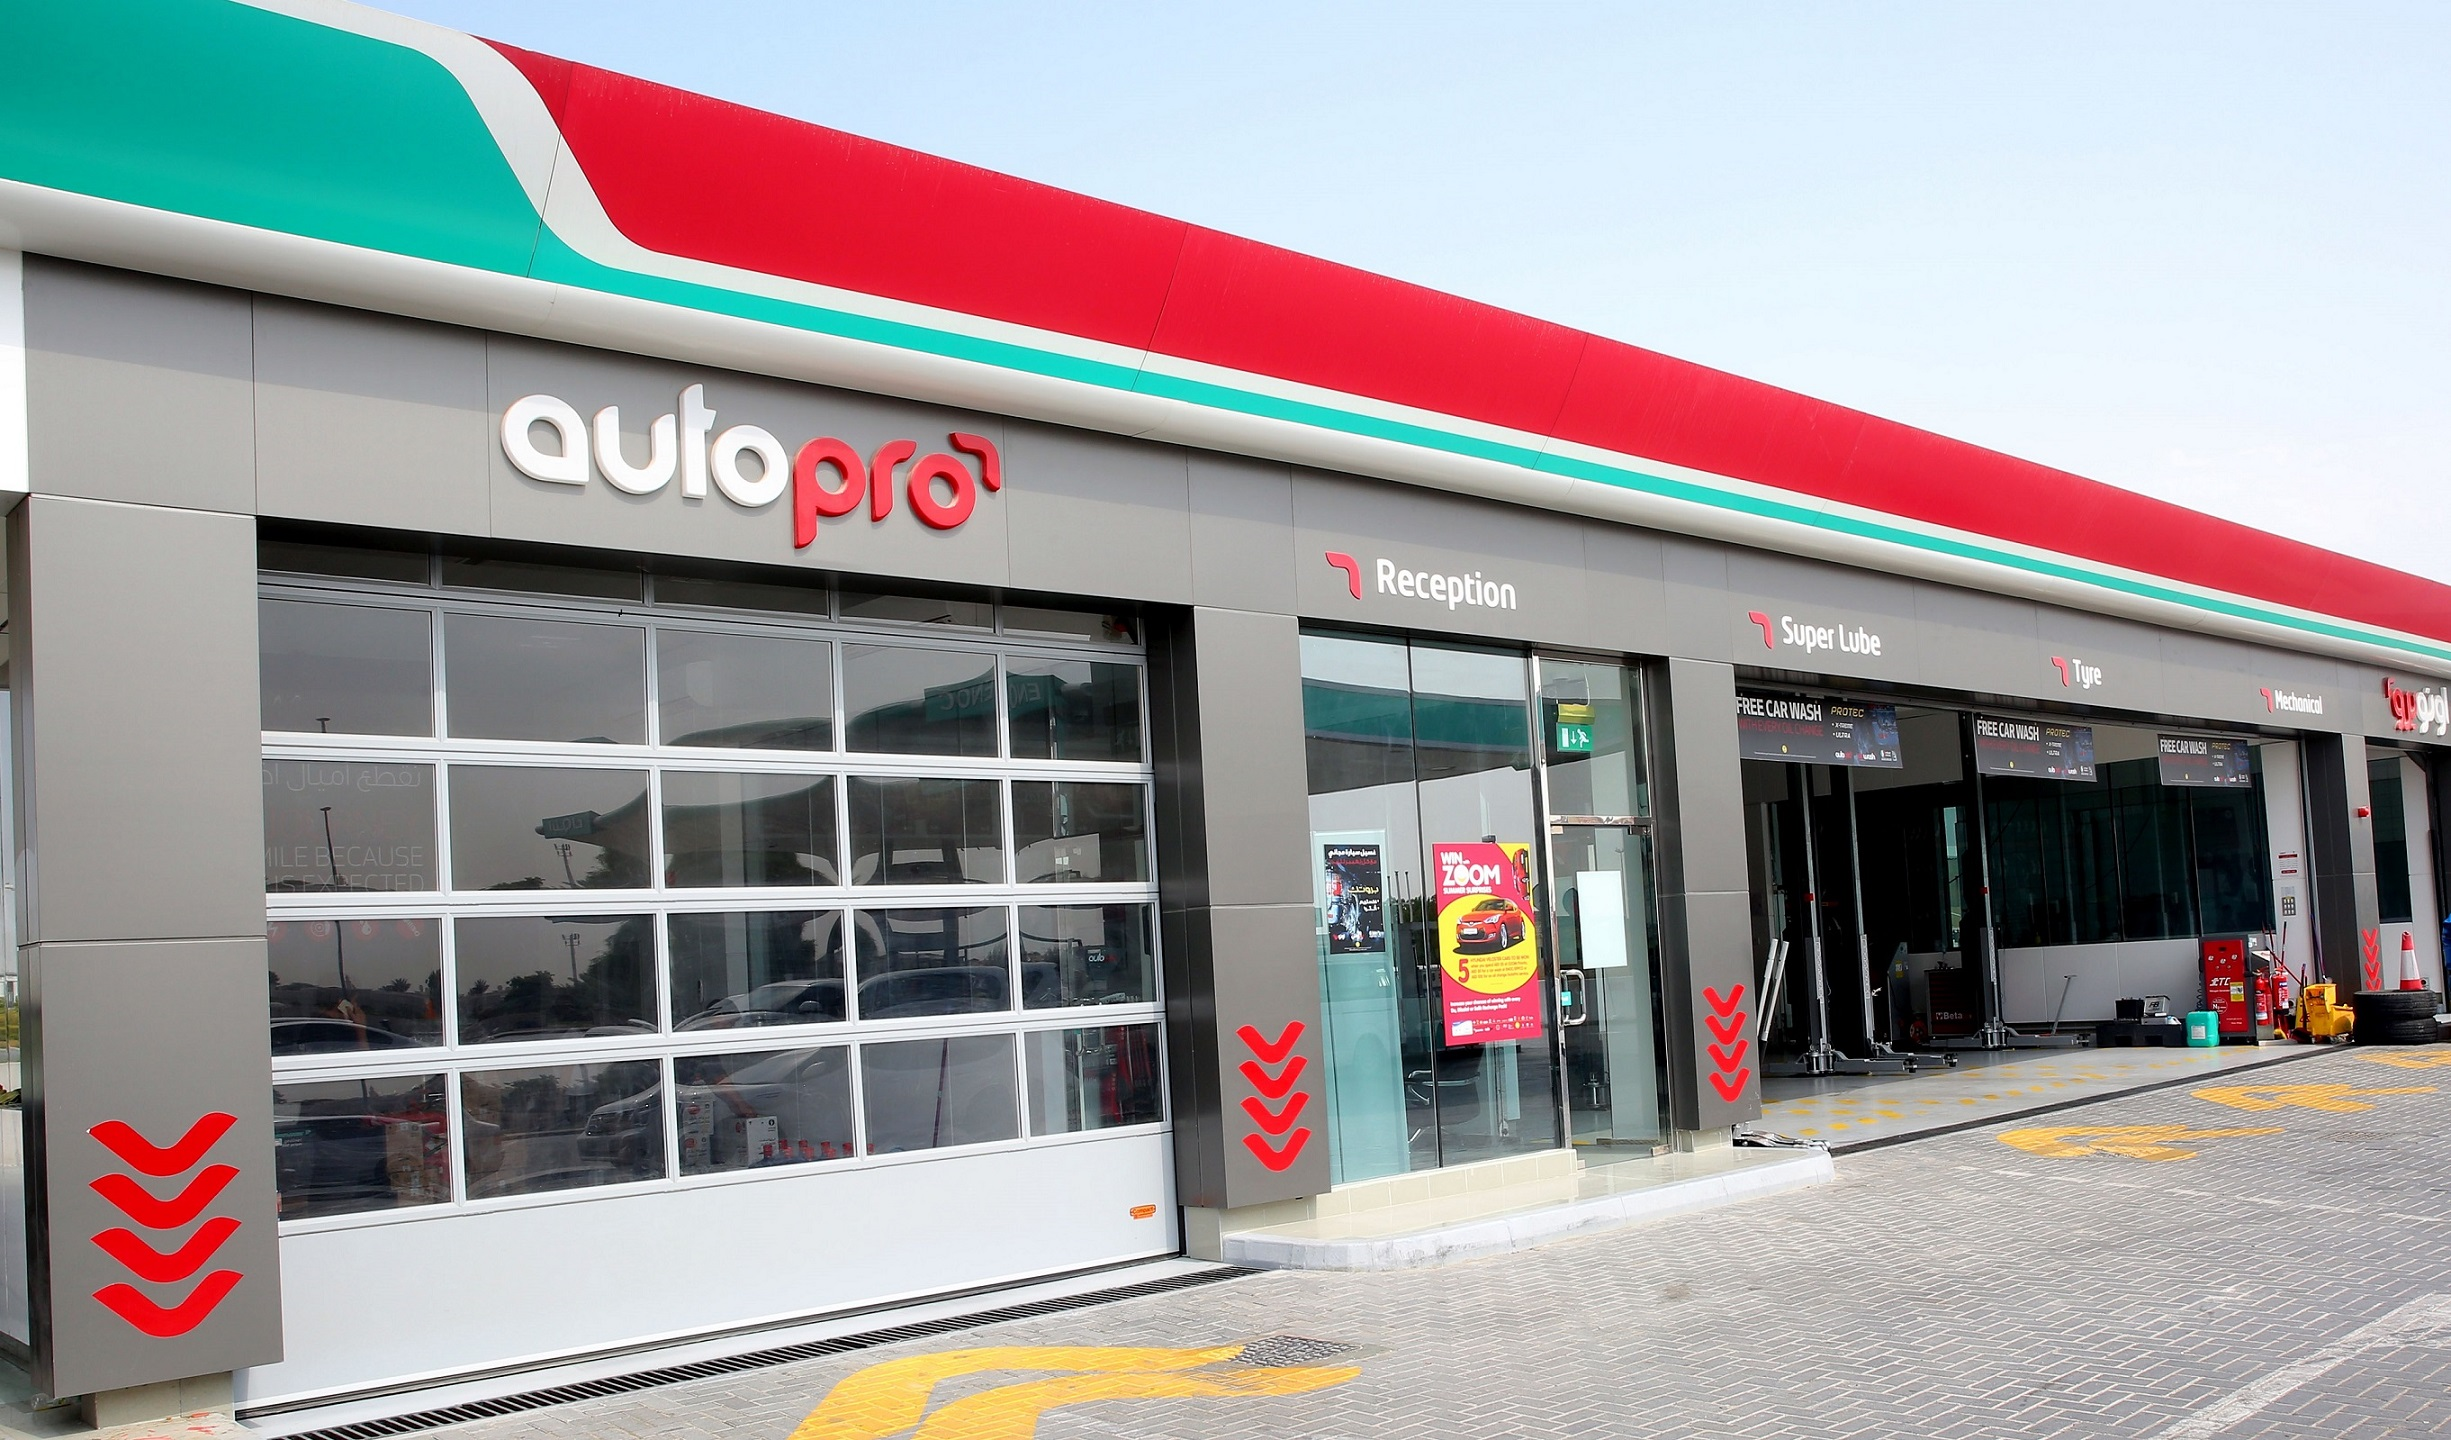 AutoPro strengthens footprint in UAE with plans to open 9 sites by end of 2021